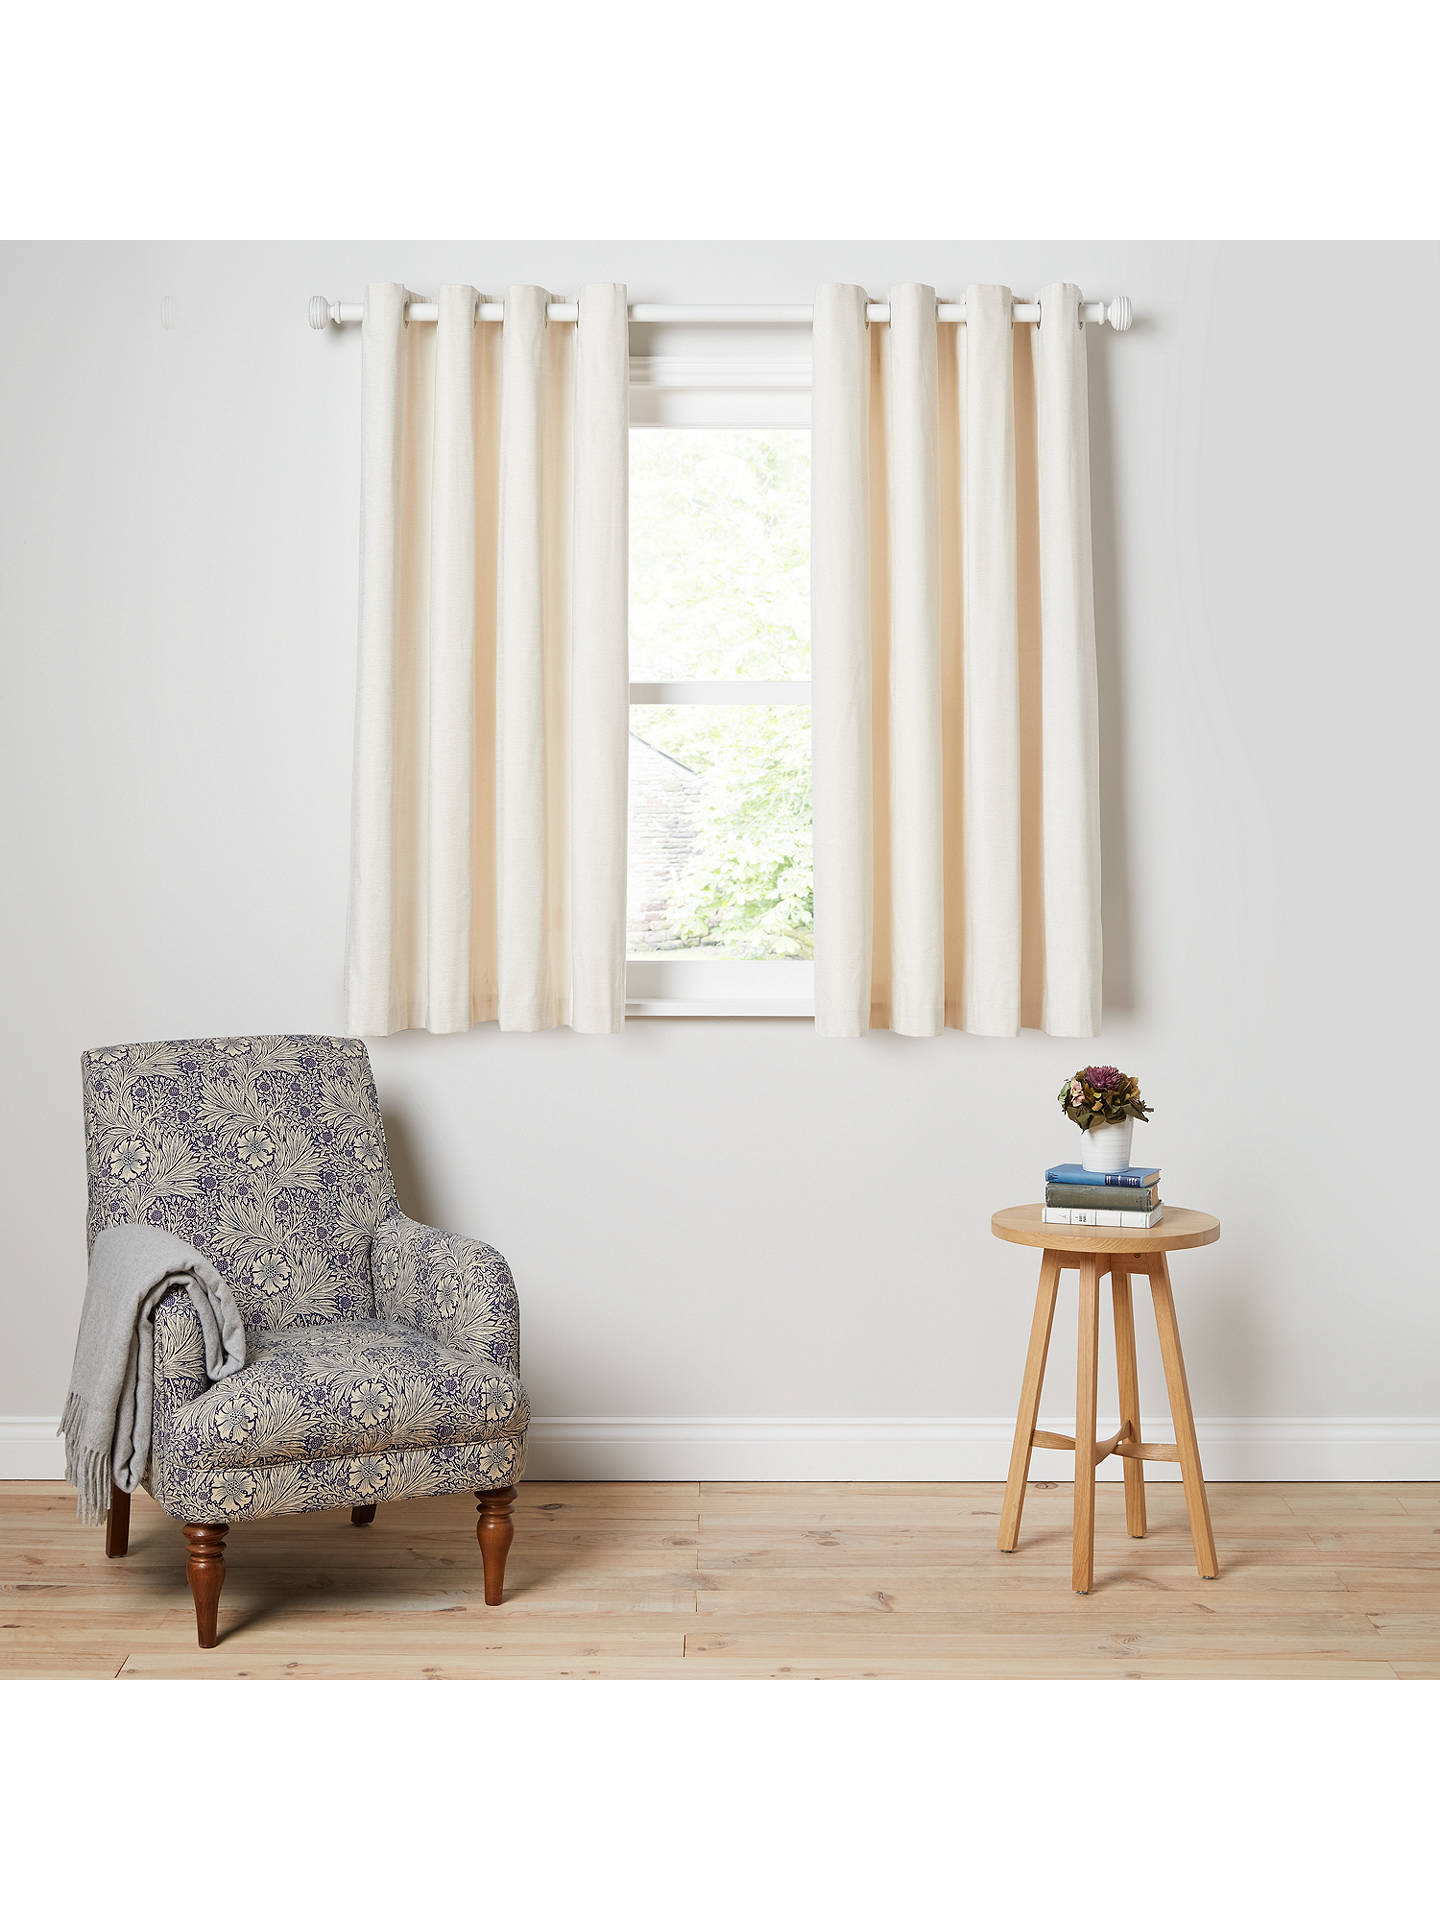 Buy John Lewis & Partners Chester Pair Lined Eyelet Curtains, Oyster, W228 x Drop 137cm Online at johnlewis.com